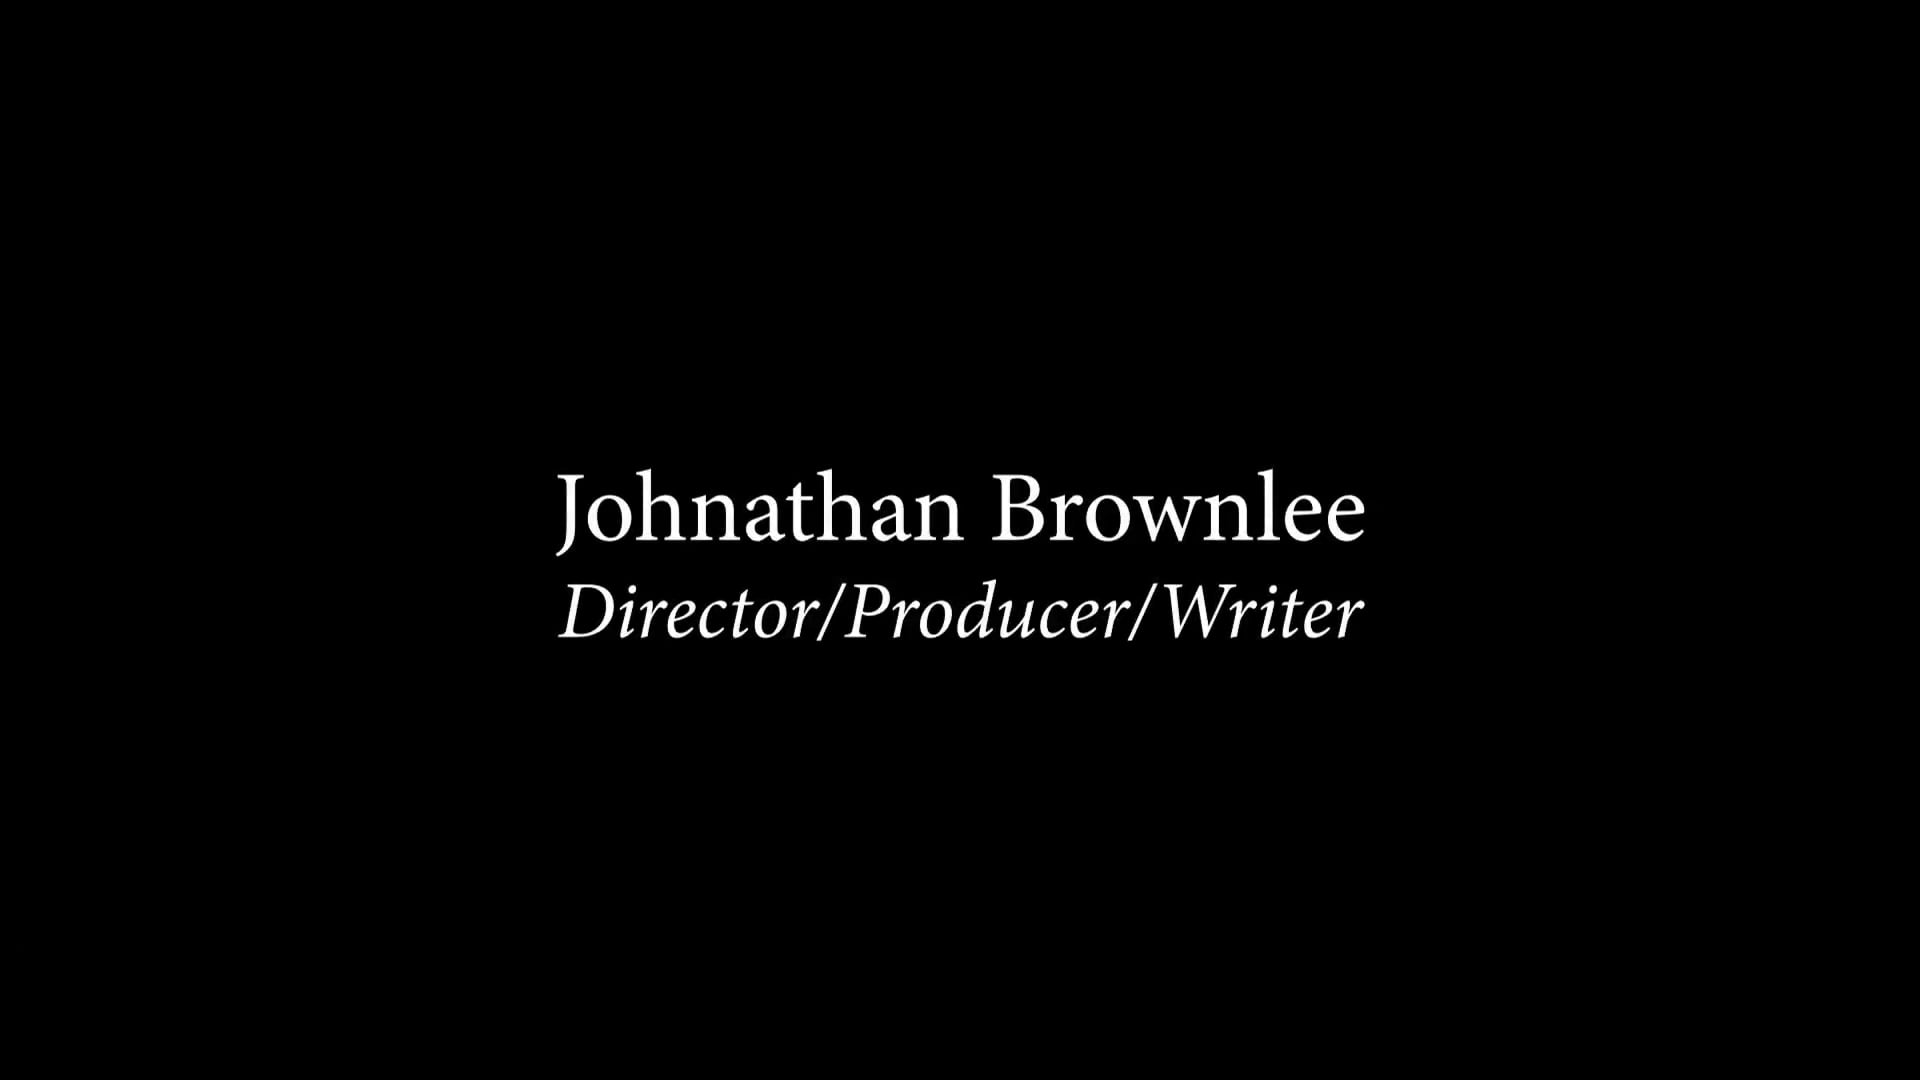 Johnathan Brownlee - Director / Producer / Writer